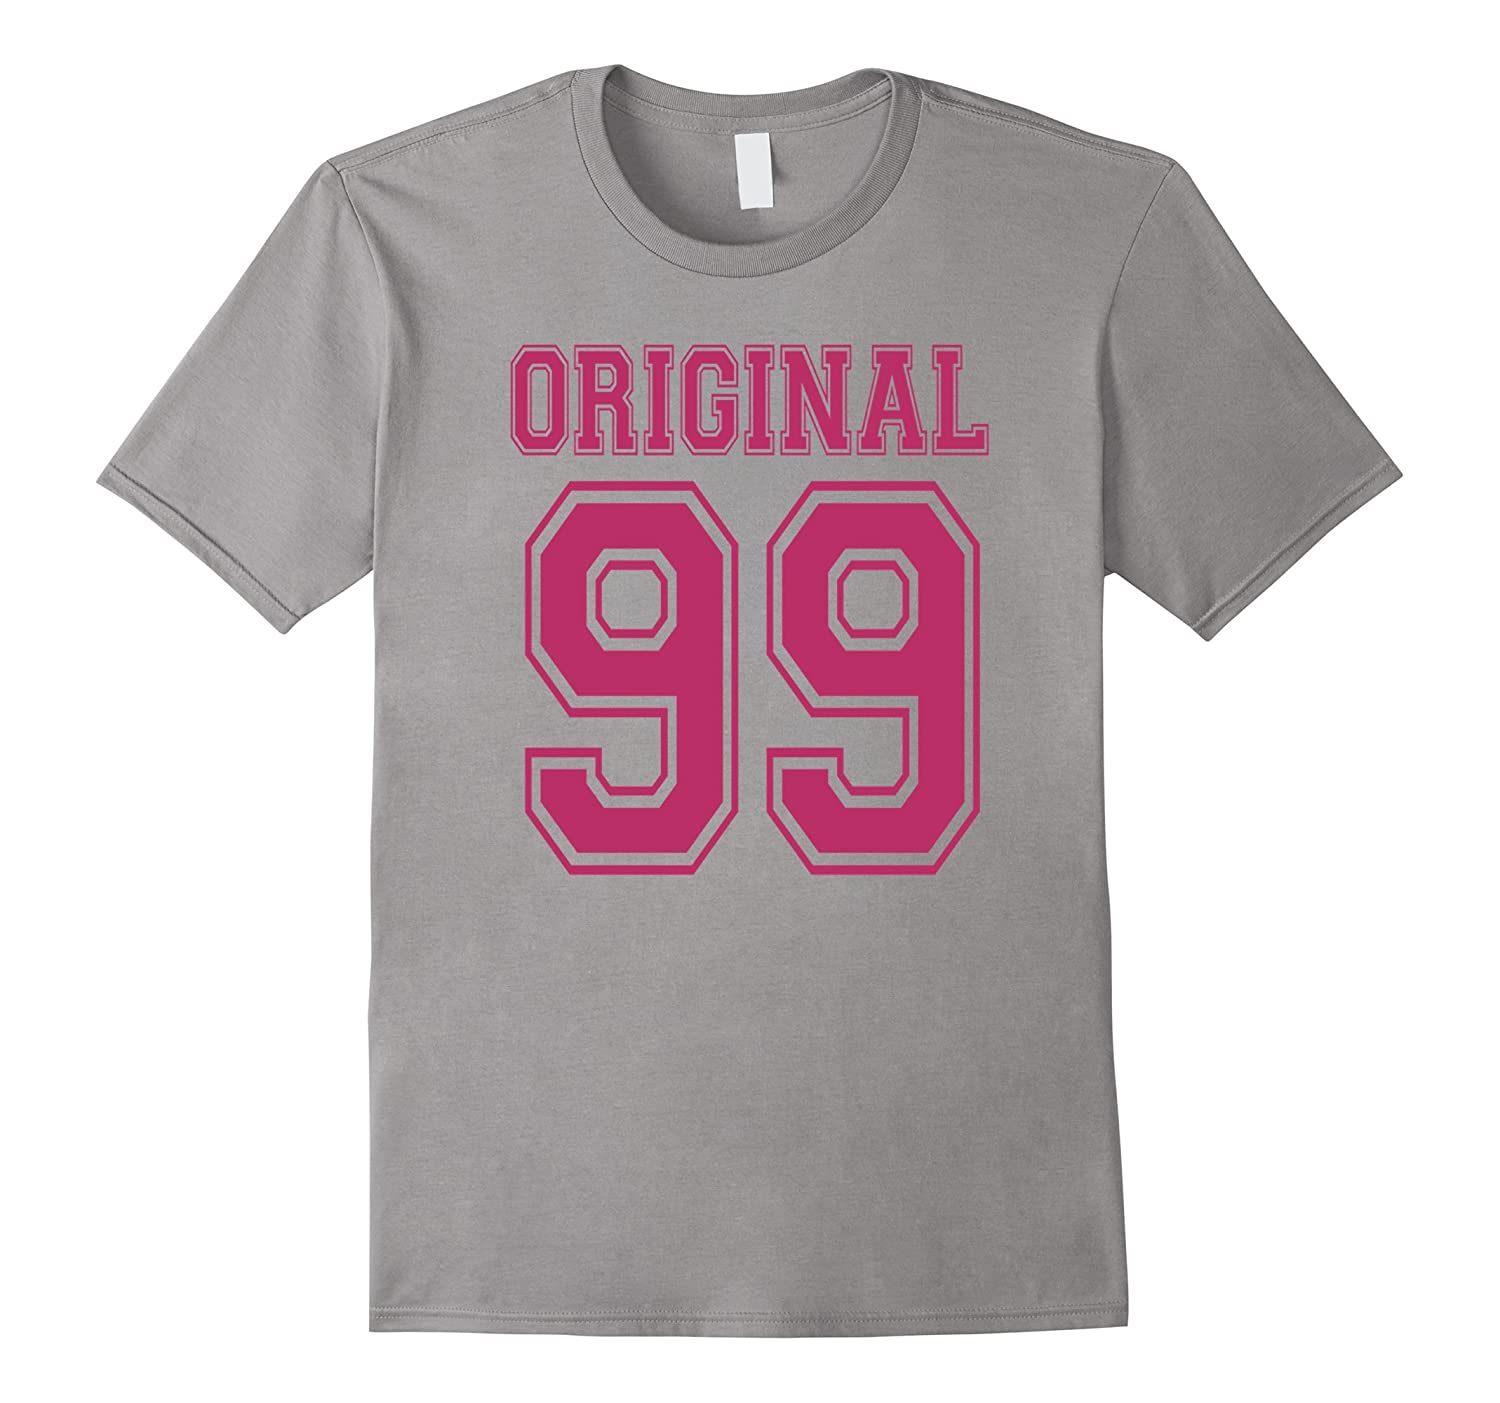 1999 T-shirt 18th Birthday Gift 18 Year Old Girl B-day Cute-FL